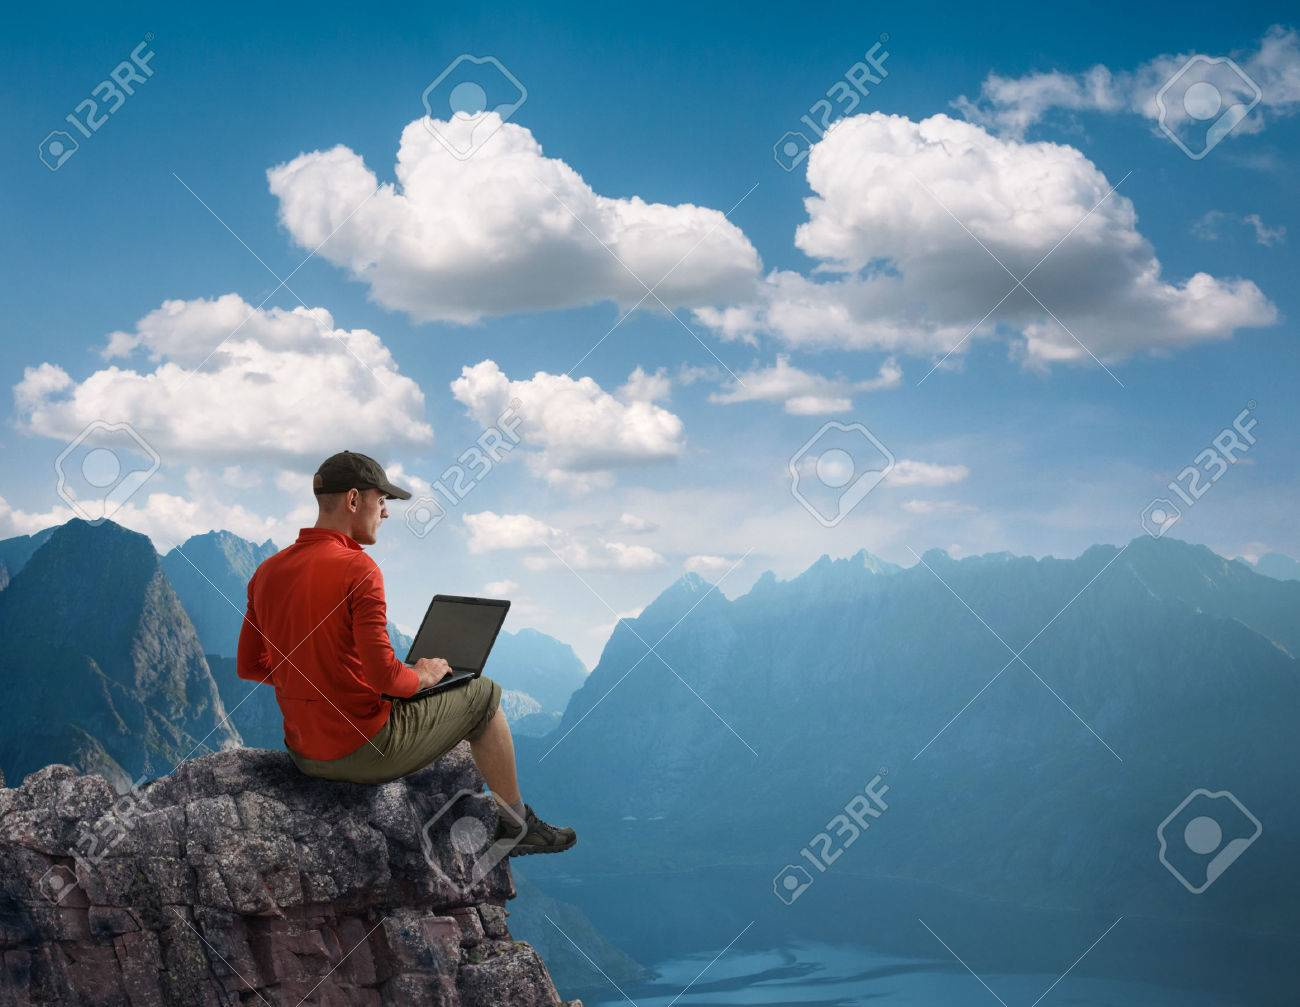 man working outdoors with laptop - 42505080